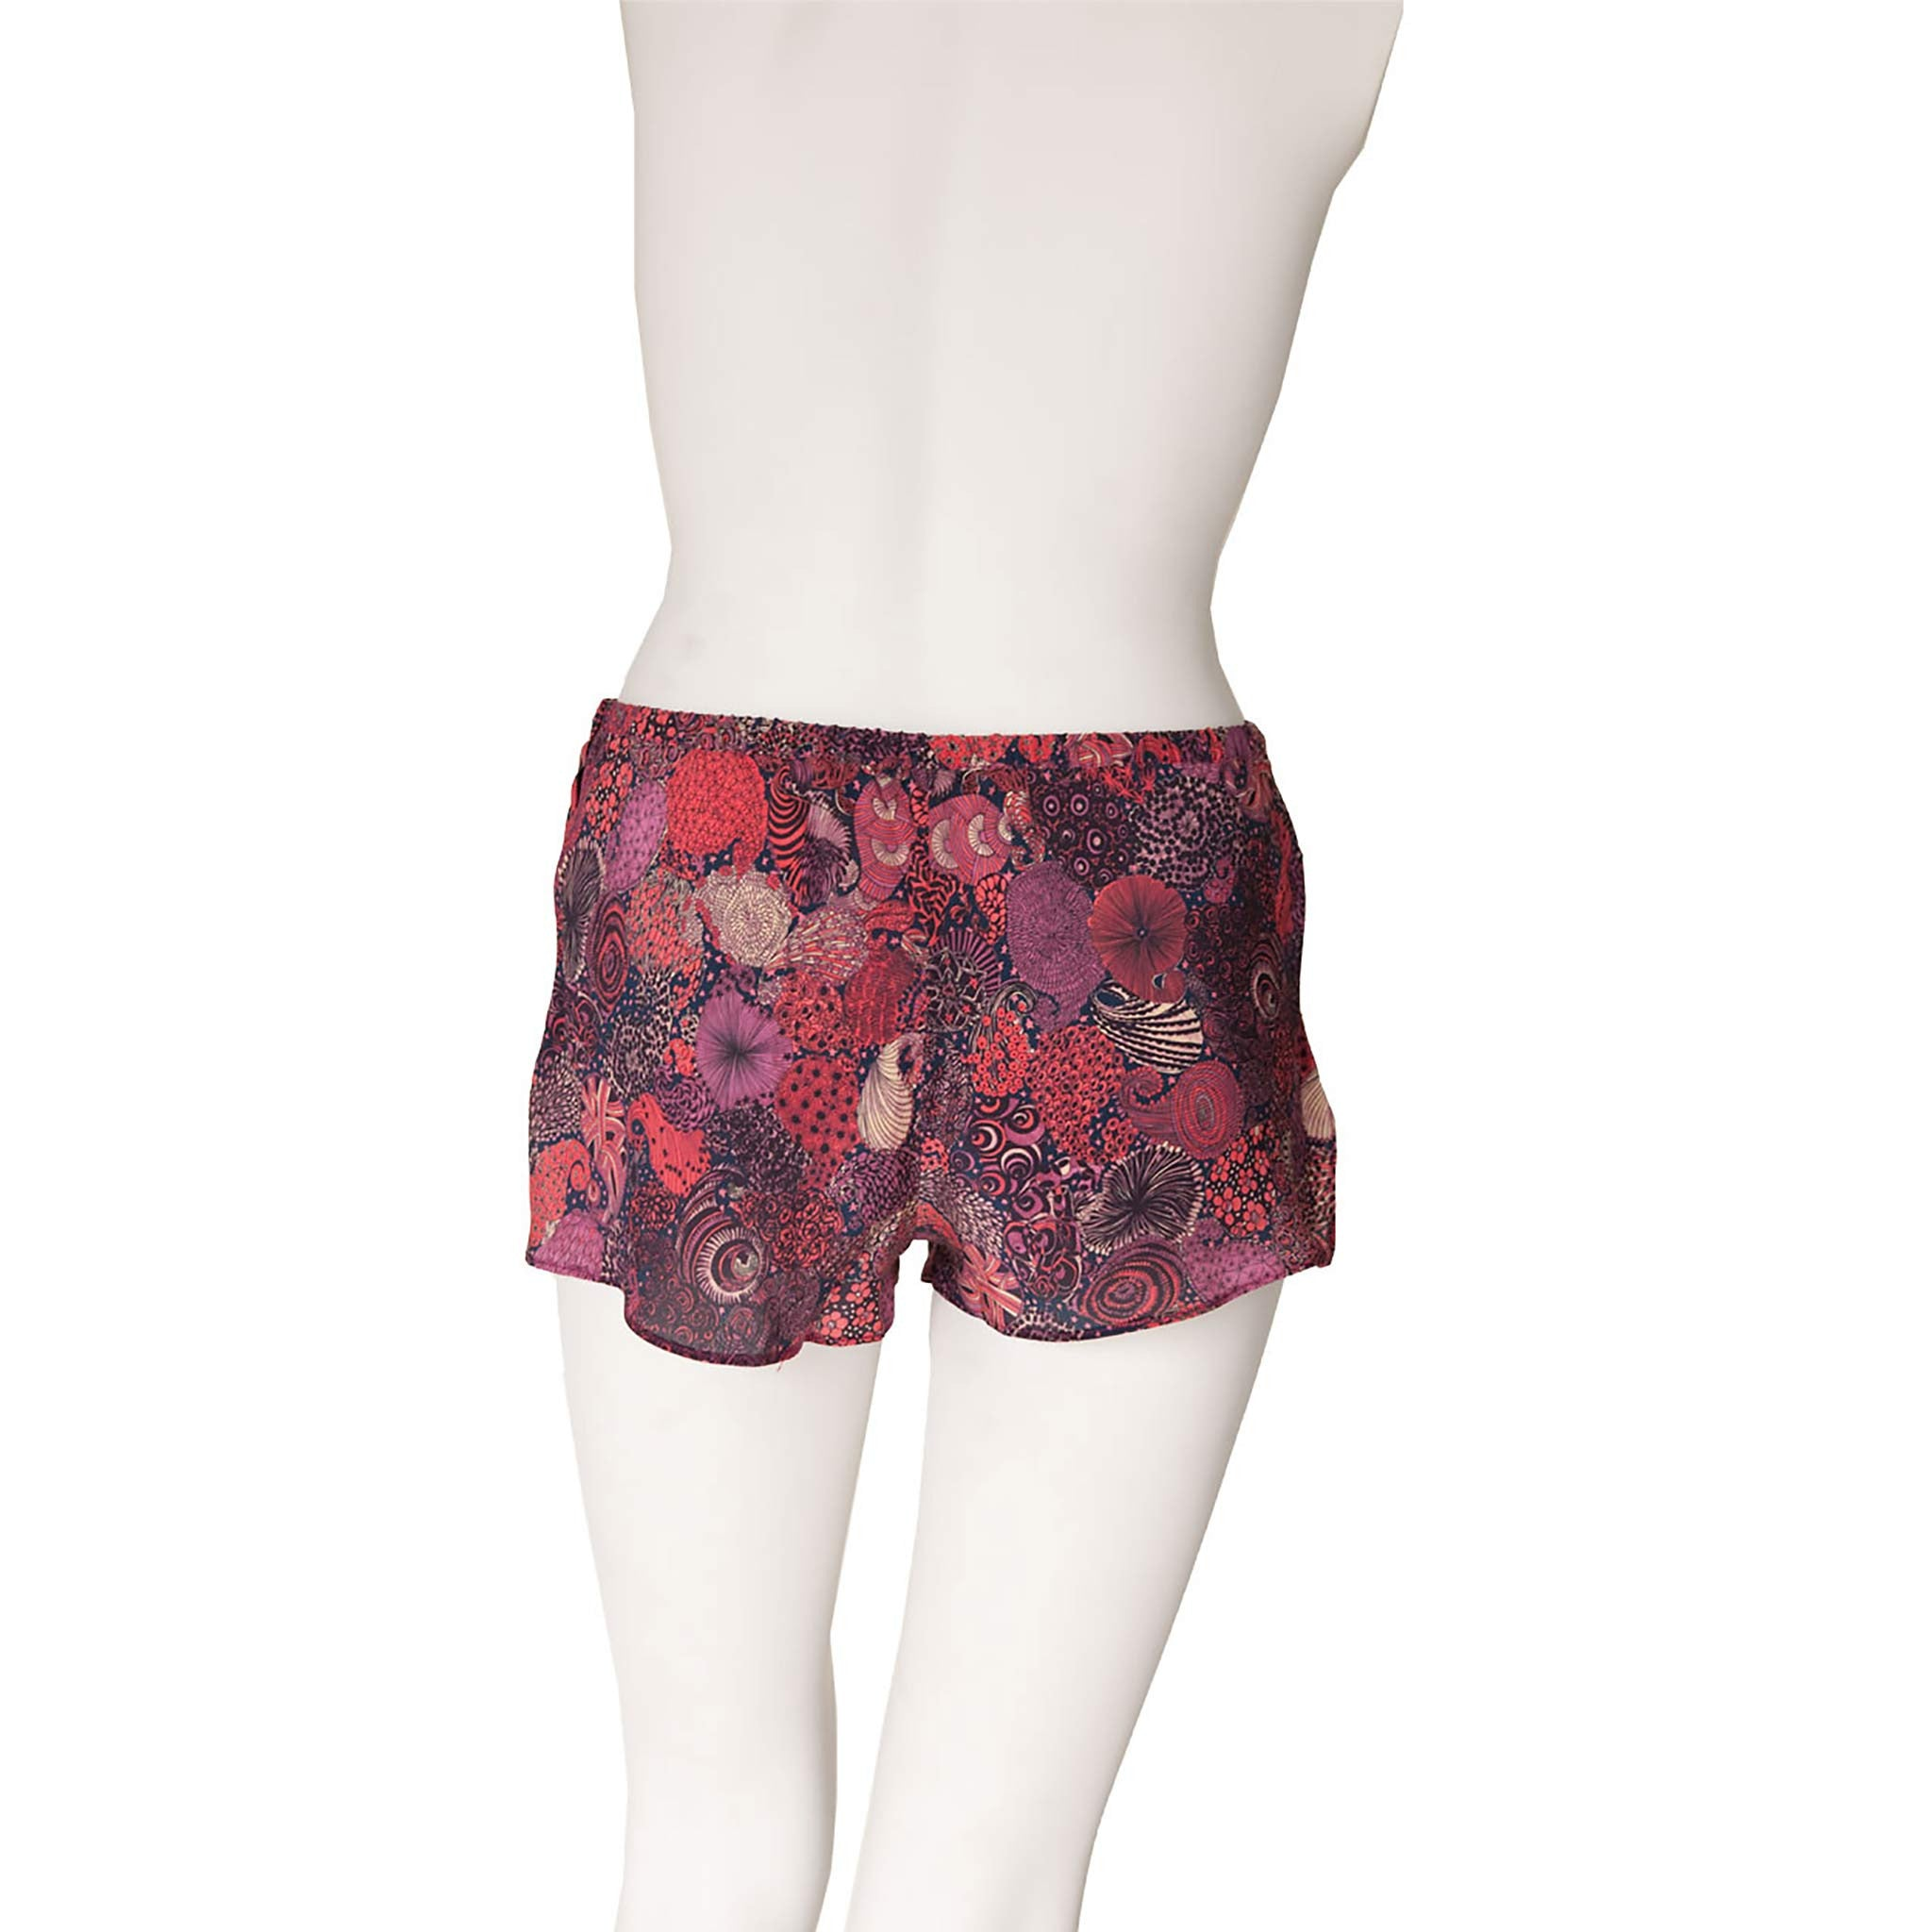 Sita Knickers in Midnight Liberty Print Silk Crepe de Chine